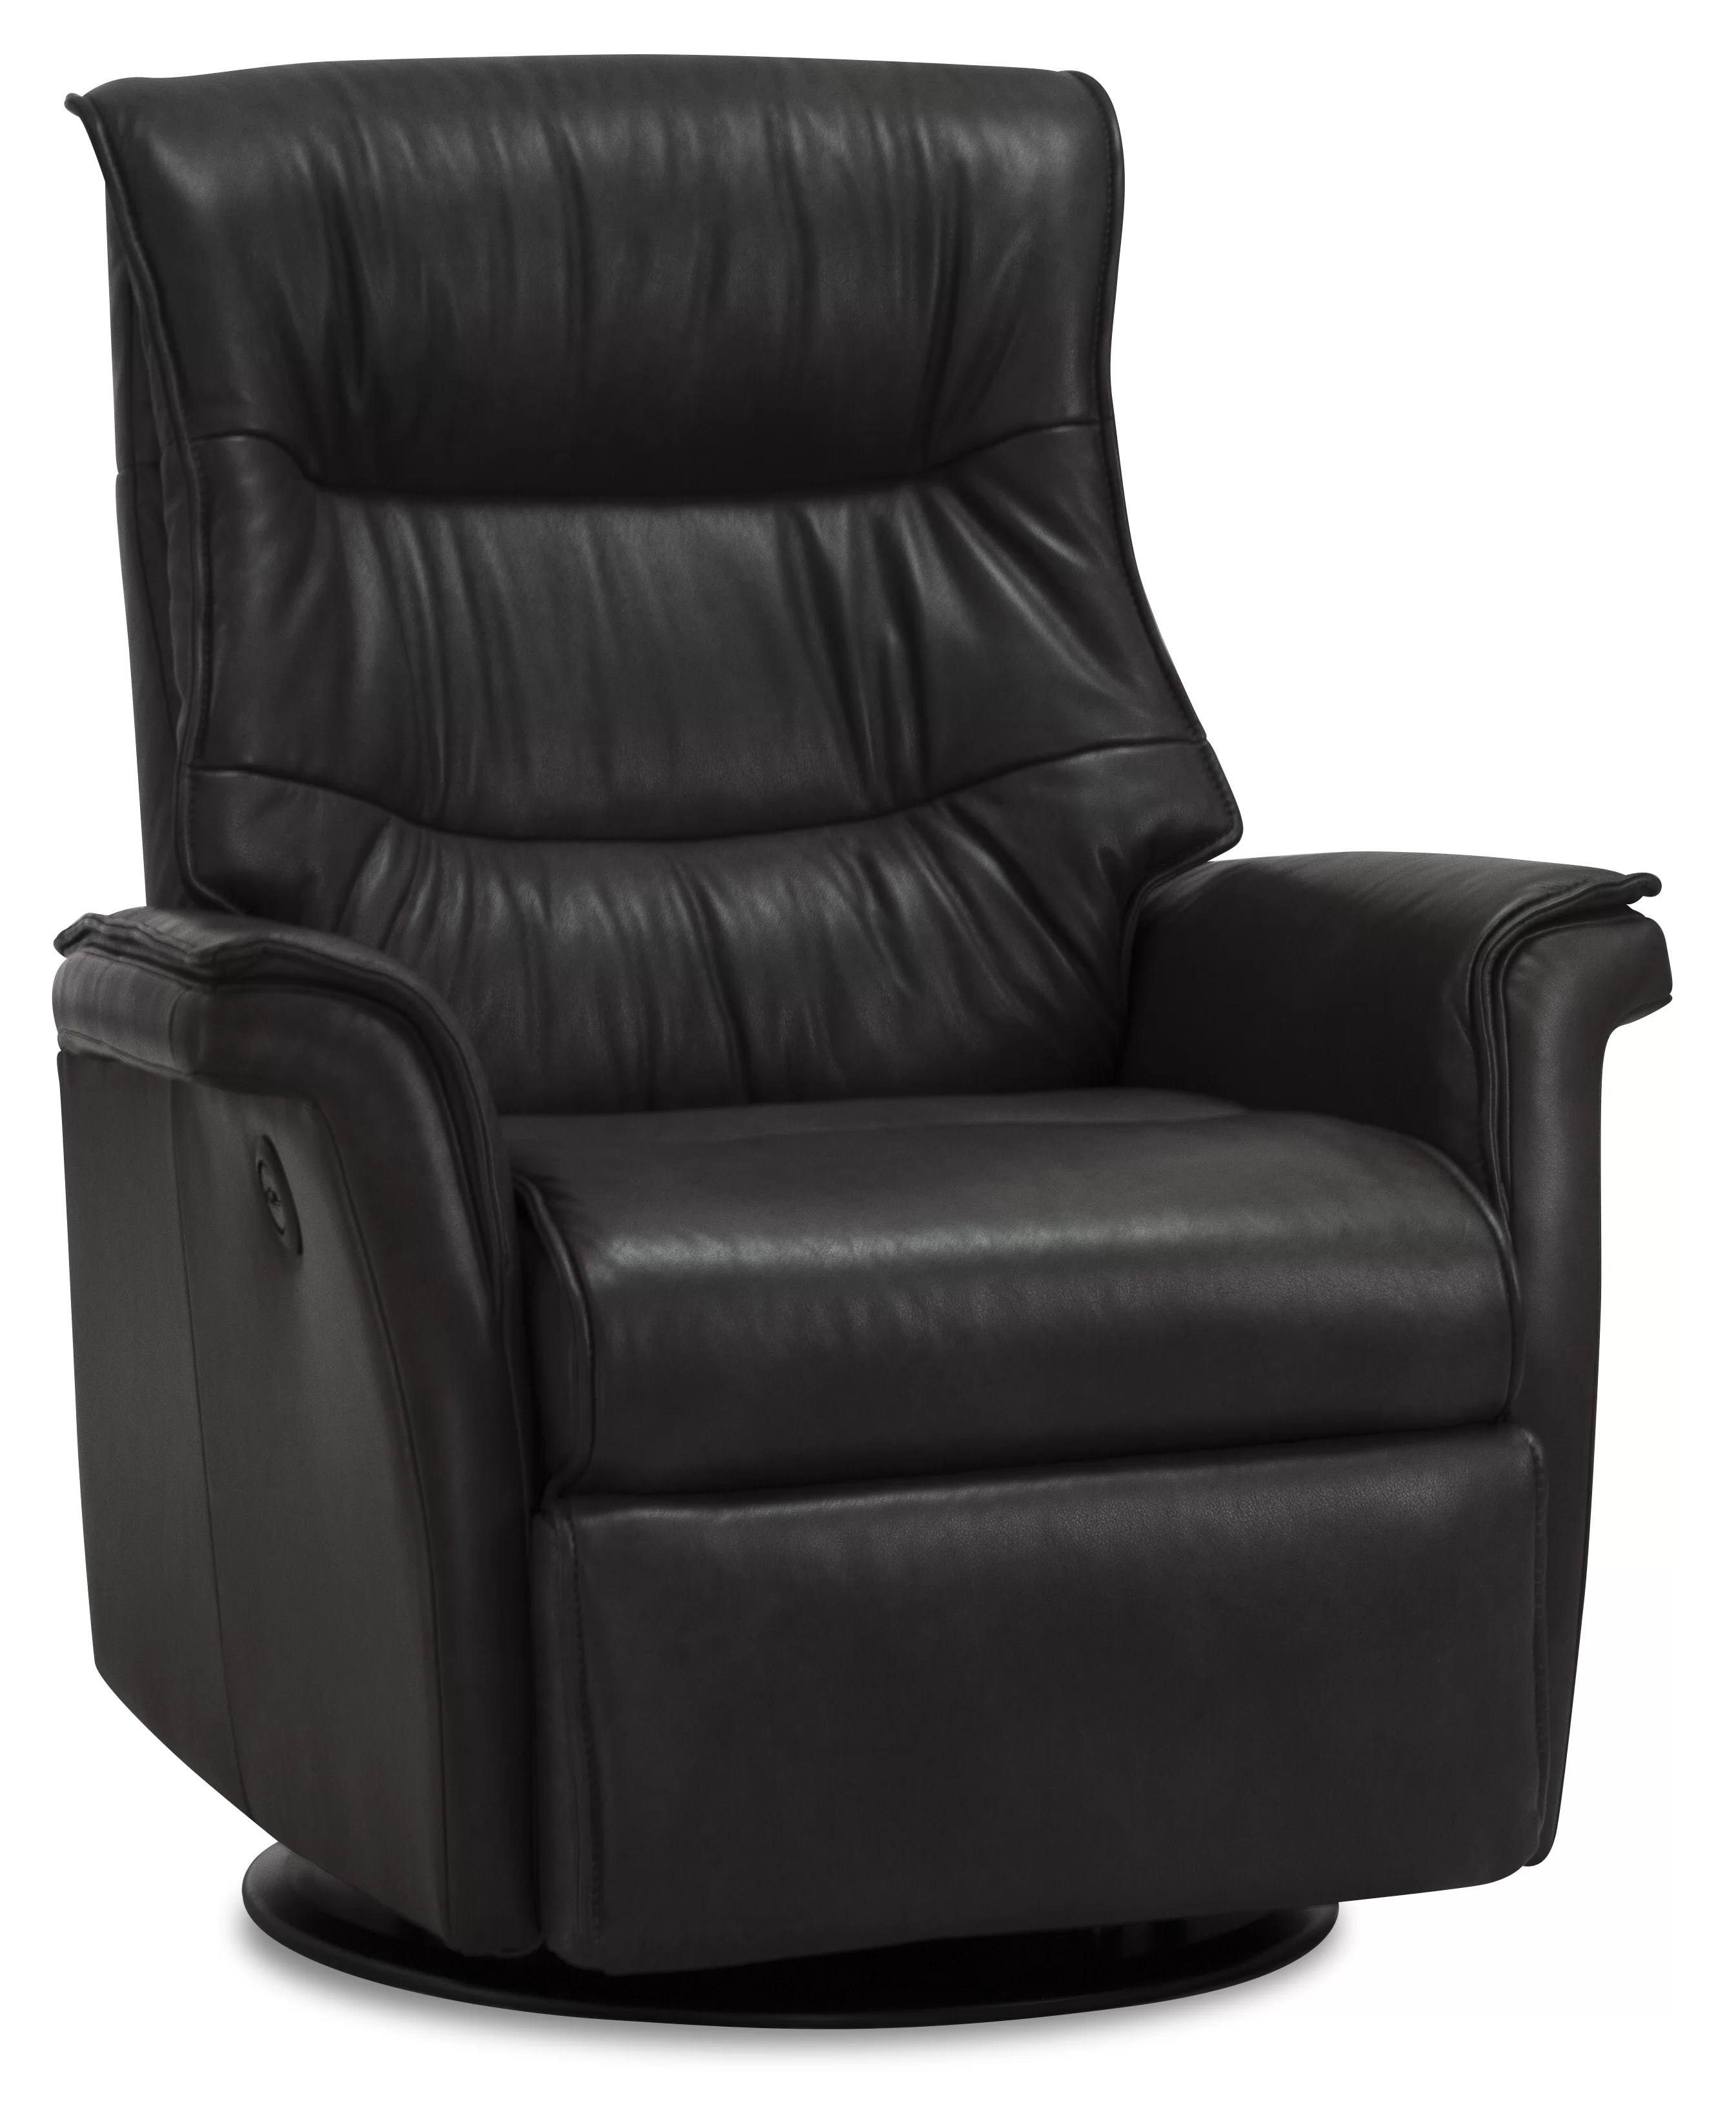 Divani Relaxer Chair Img Comfort Perigold